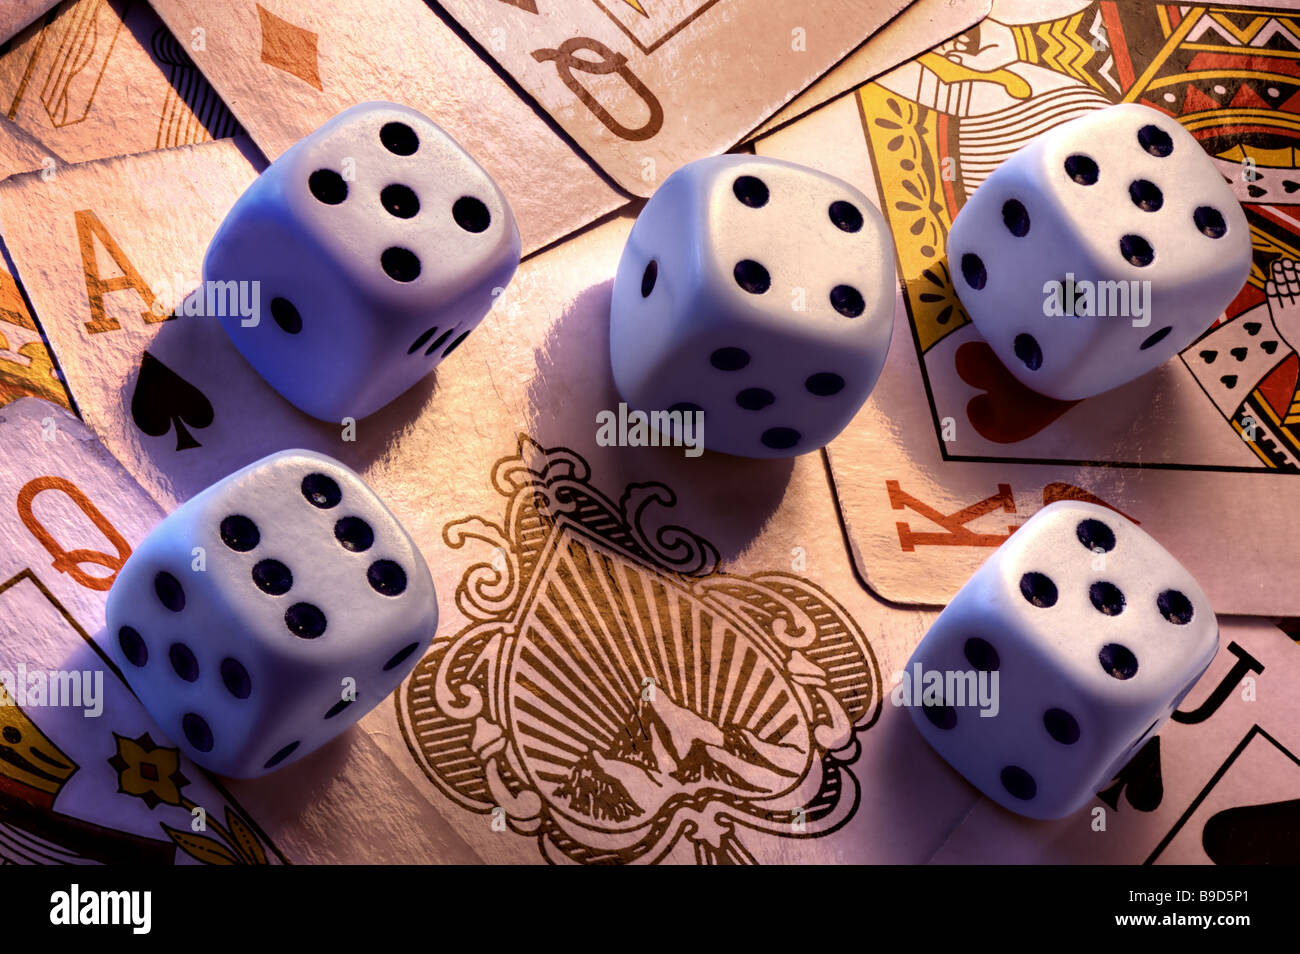 5 dice on playing cards - Stock Image